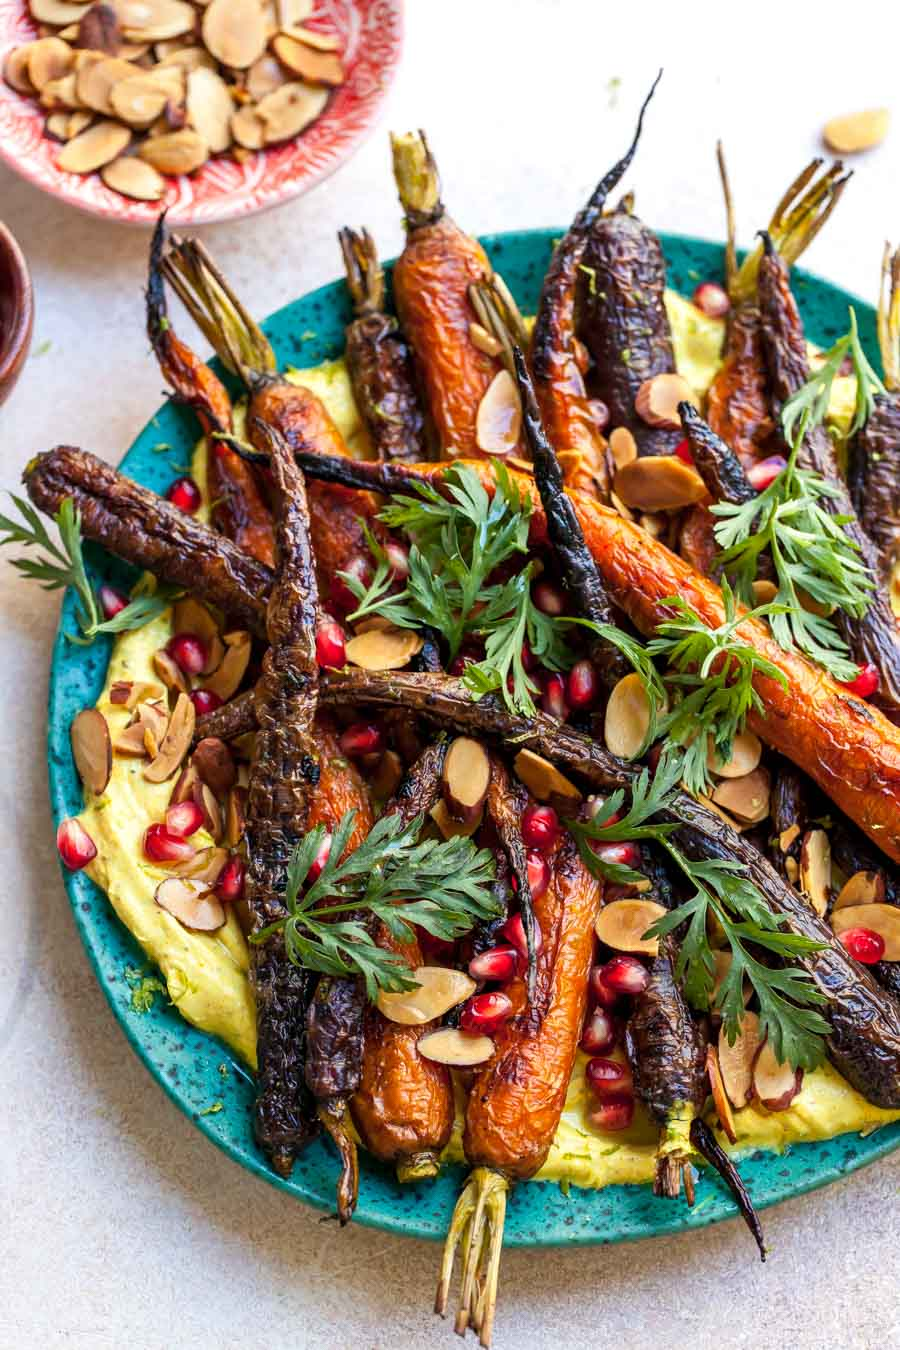 5 Ingredient Side Dish for Holiday Entertaining